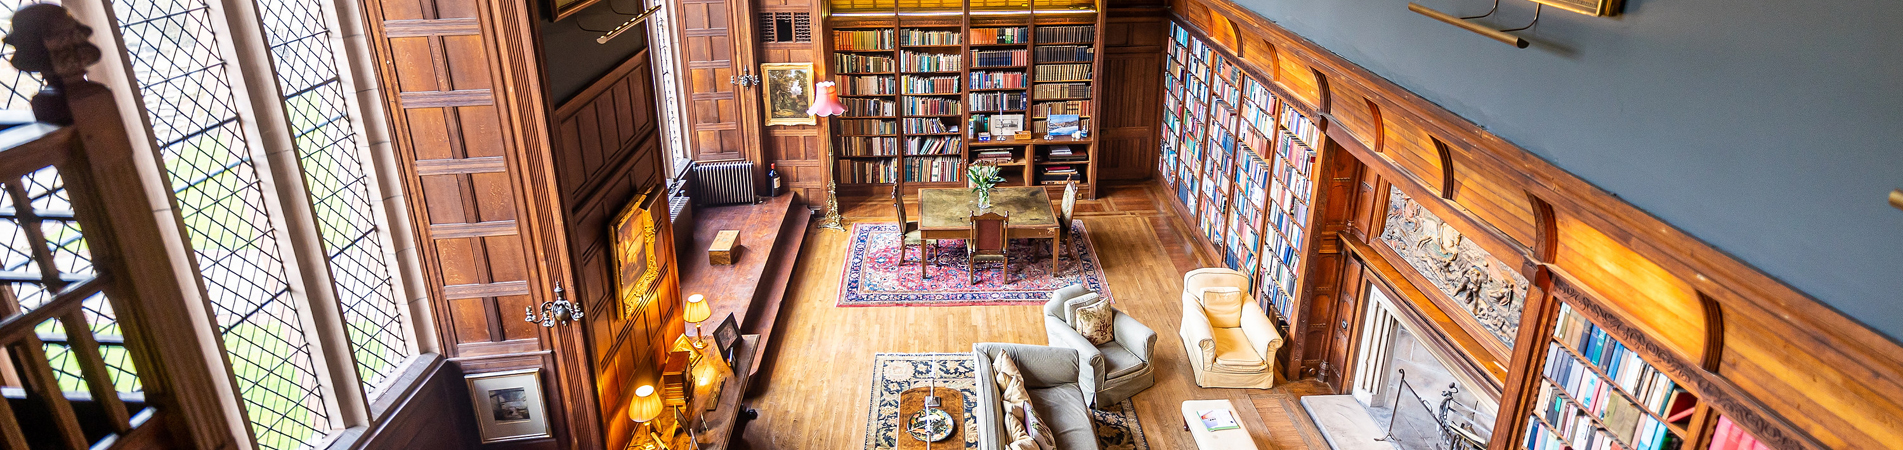 naworth-library